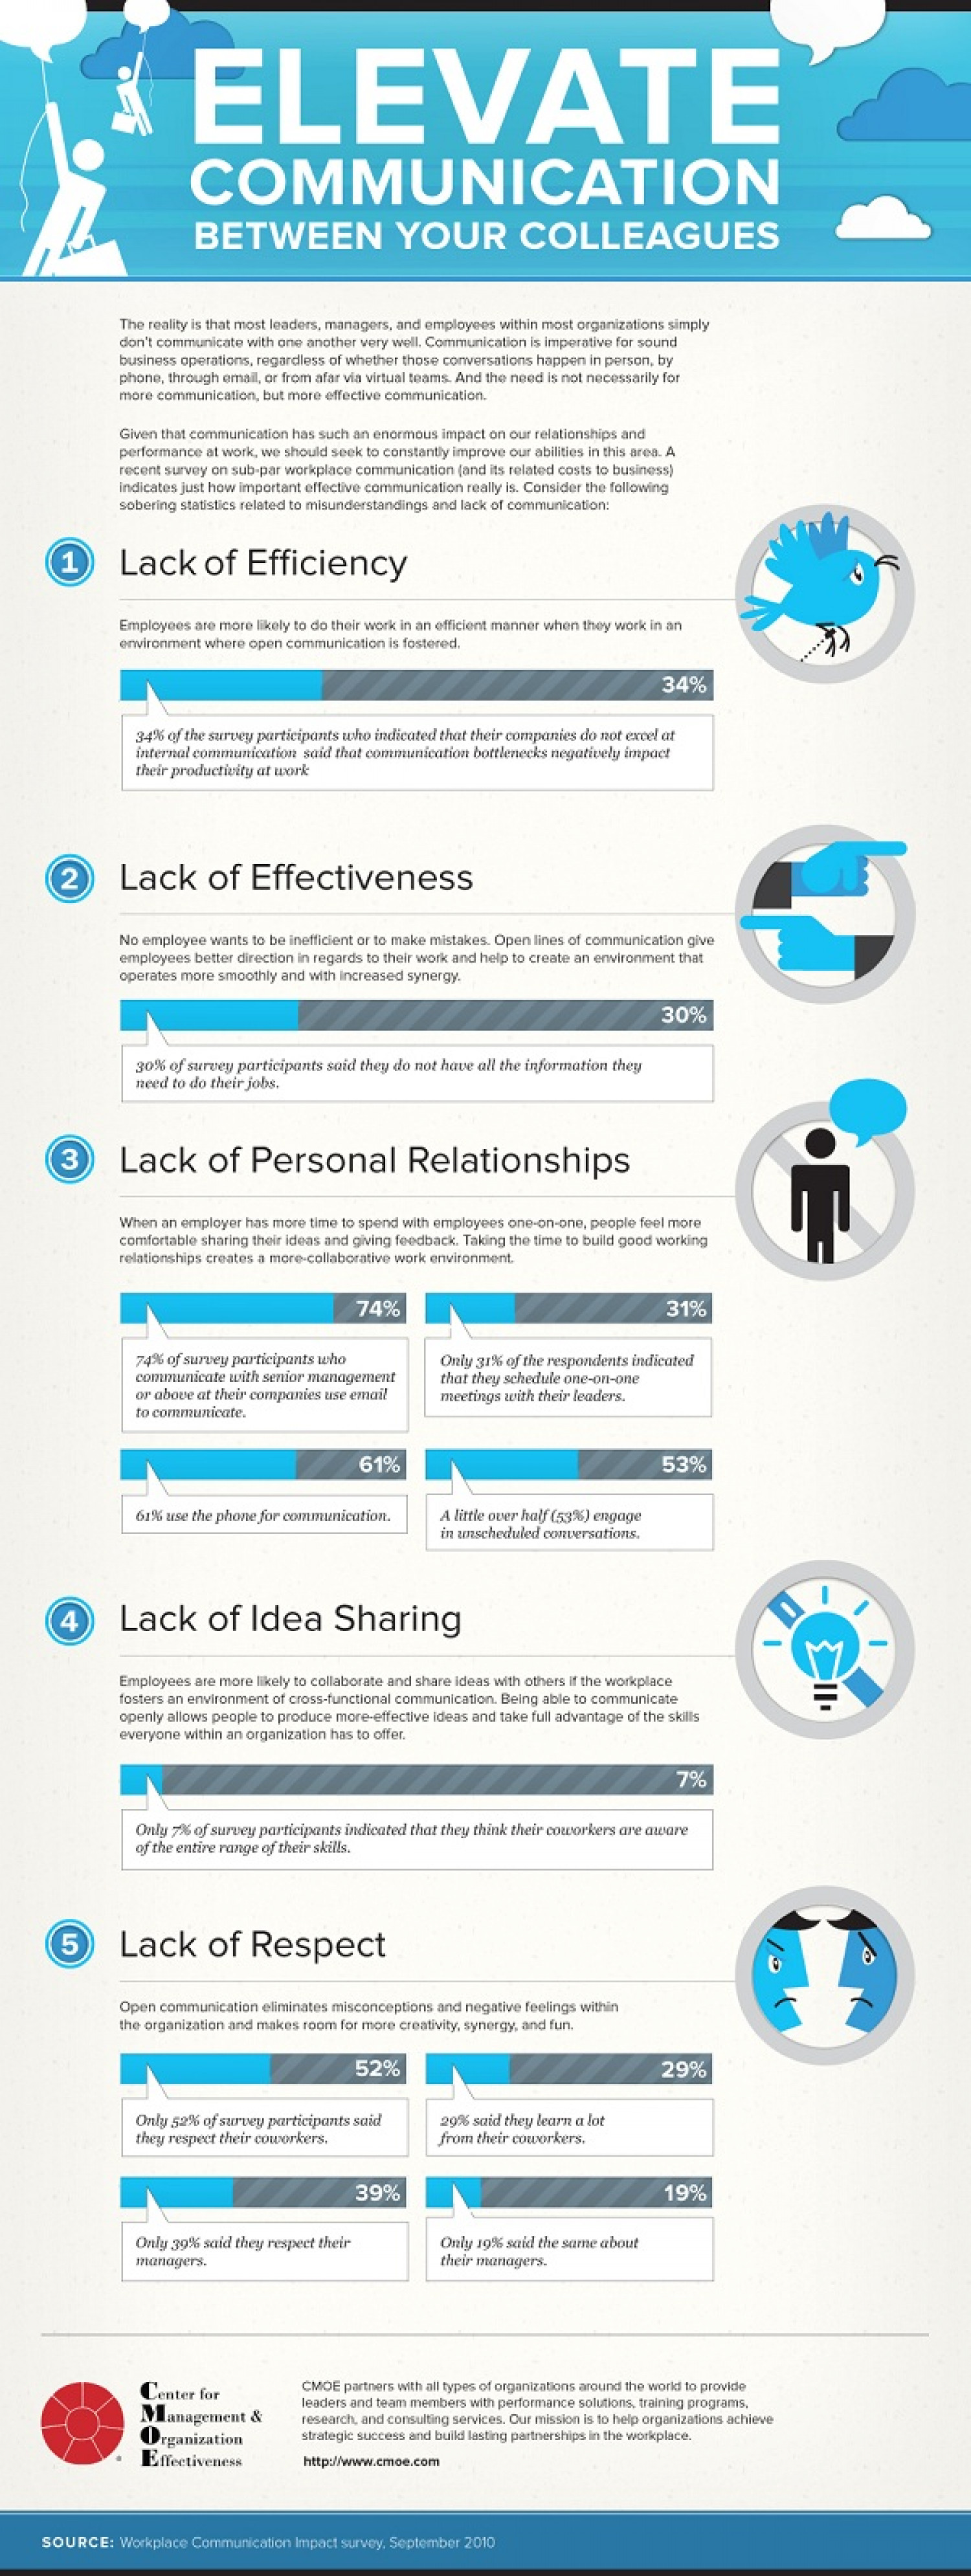 Elevate Communication Between Your Colleagues Infographic